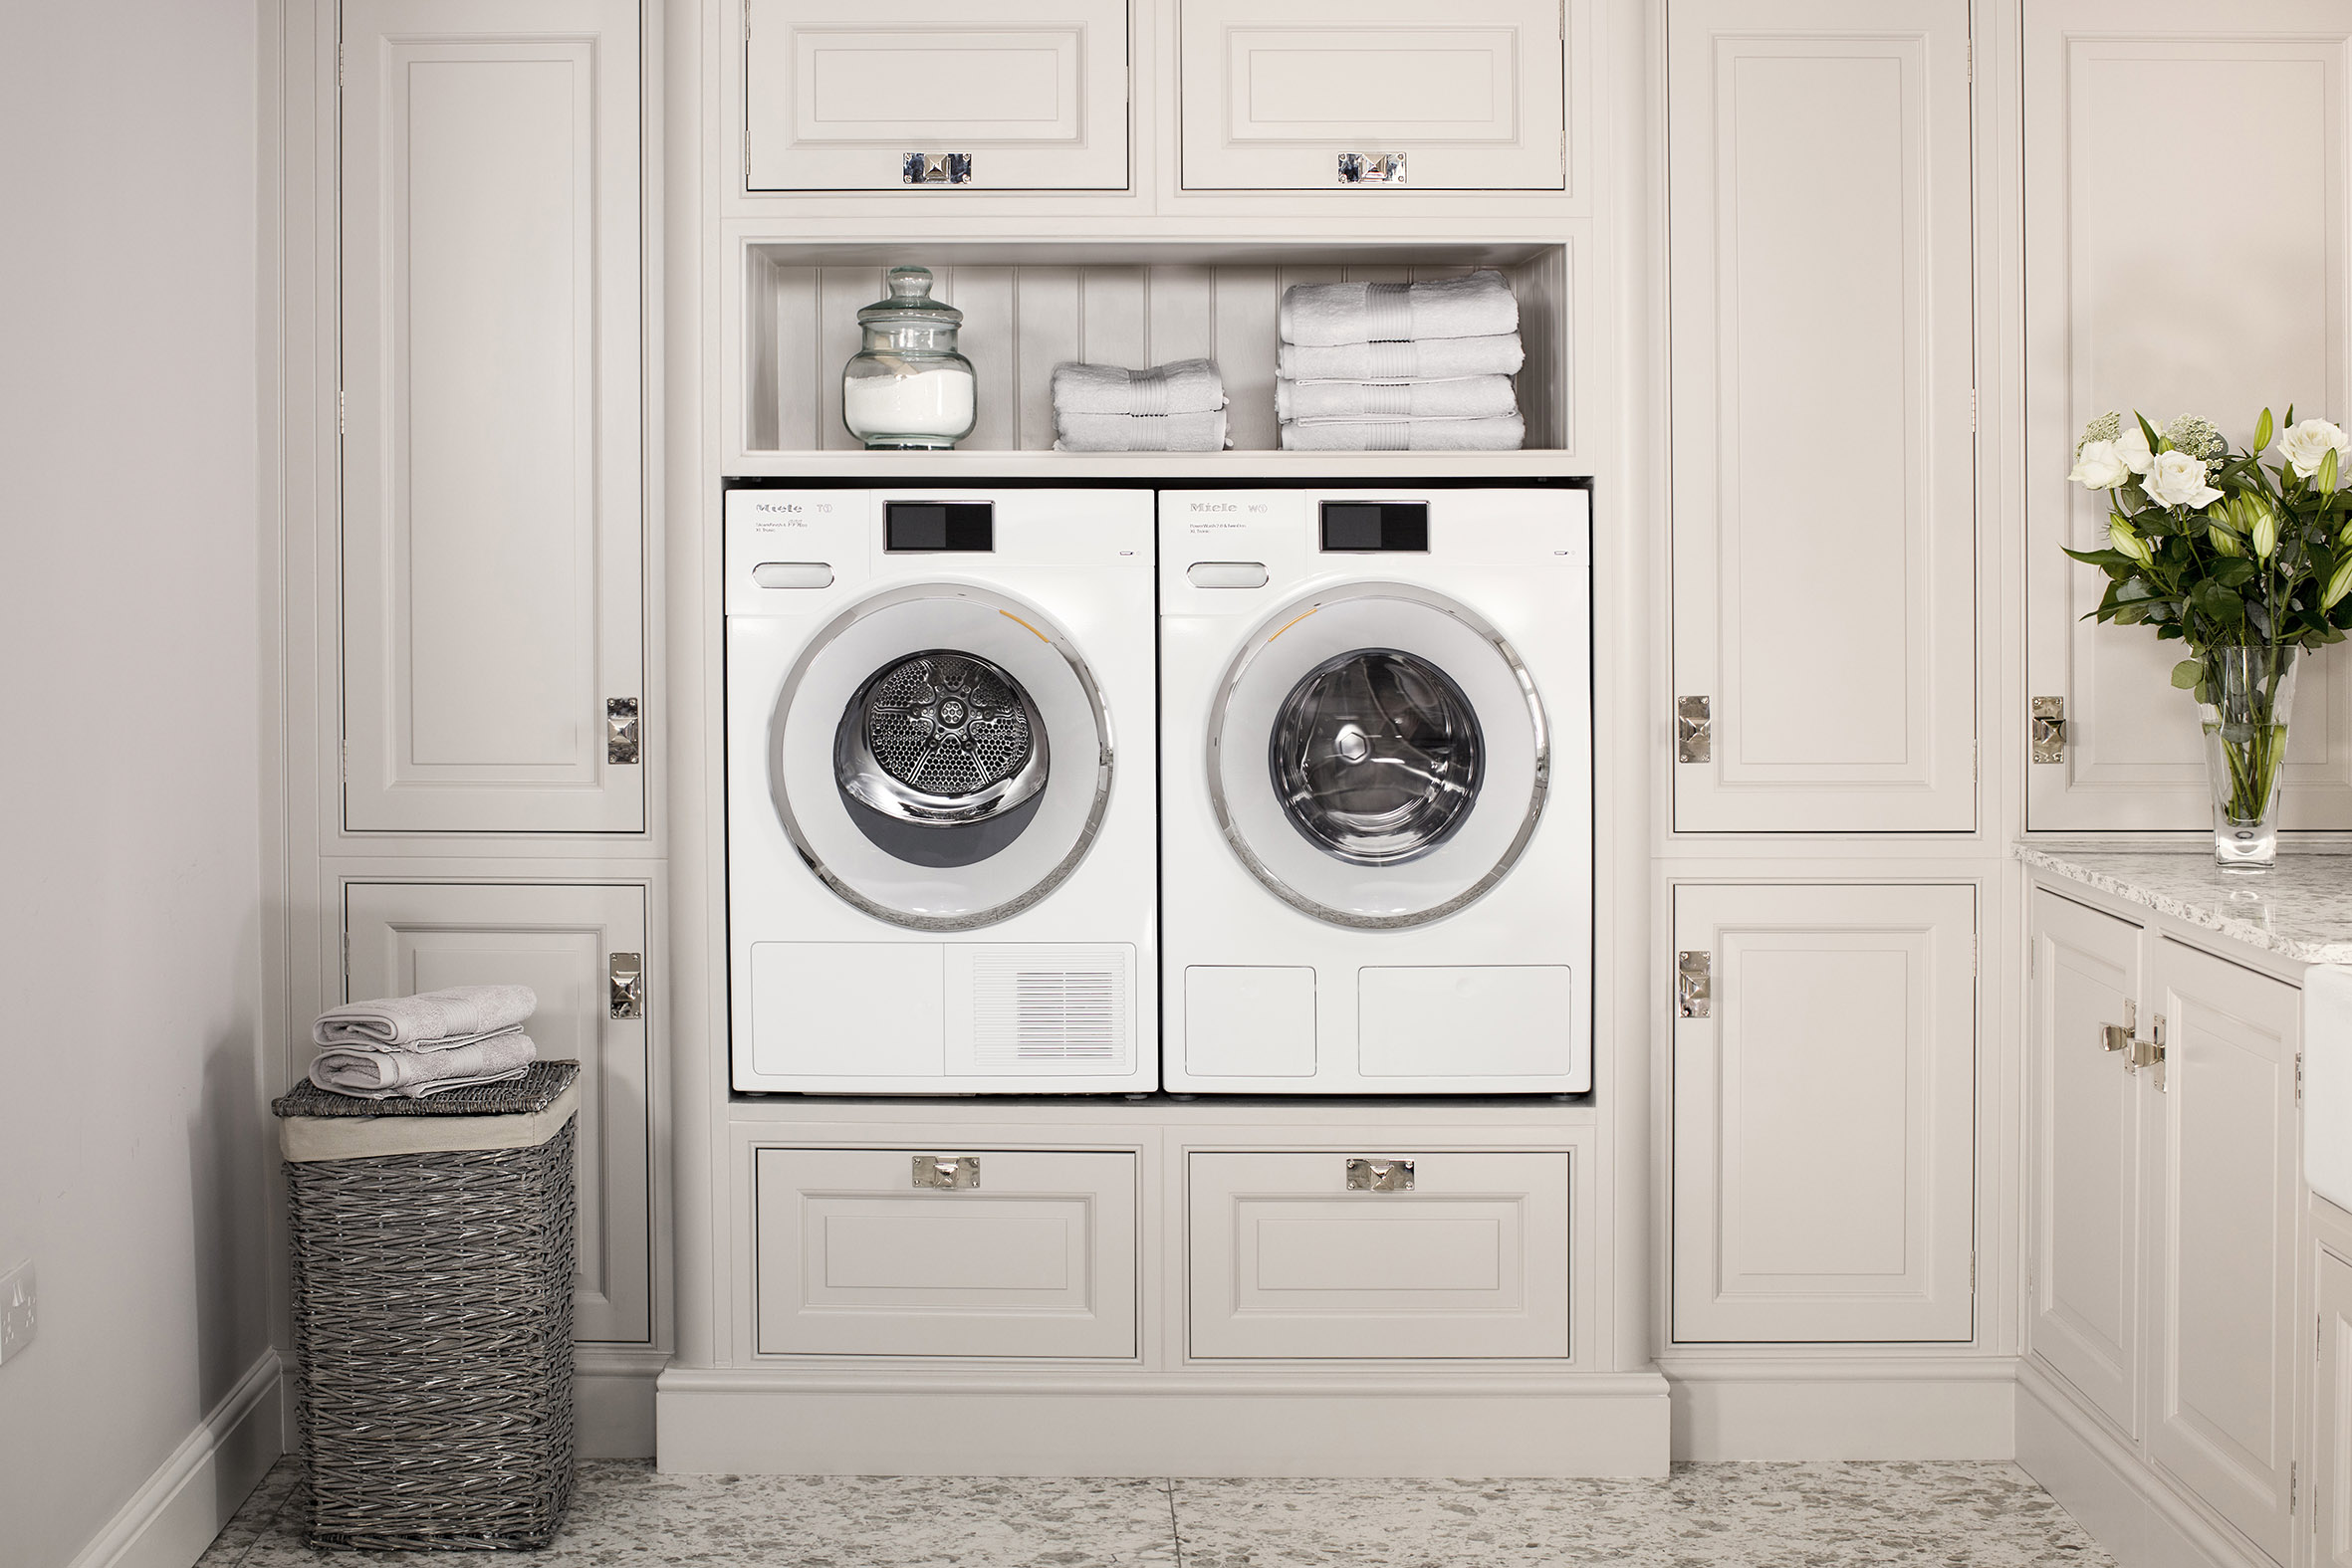 Miele Utility Room W1 and T1 Machines